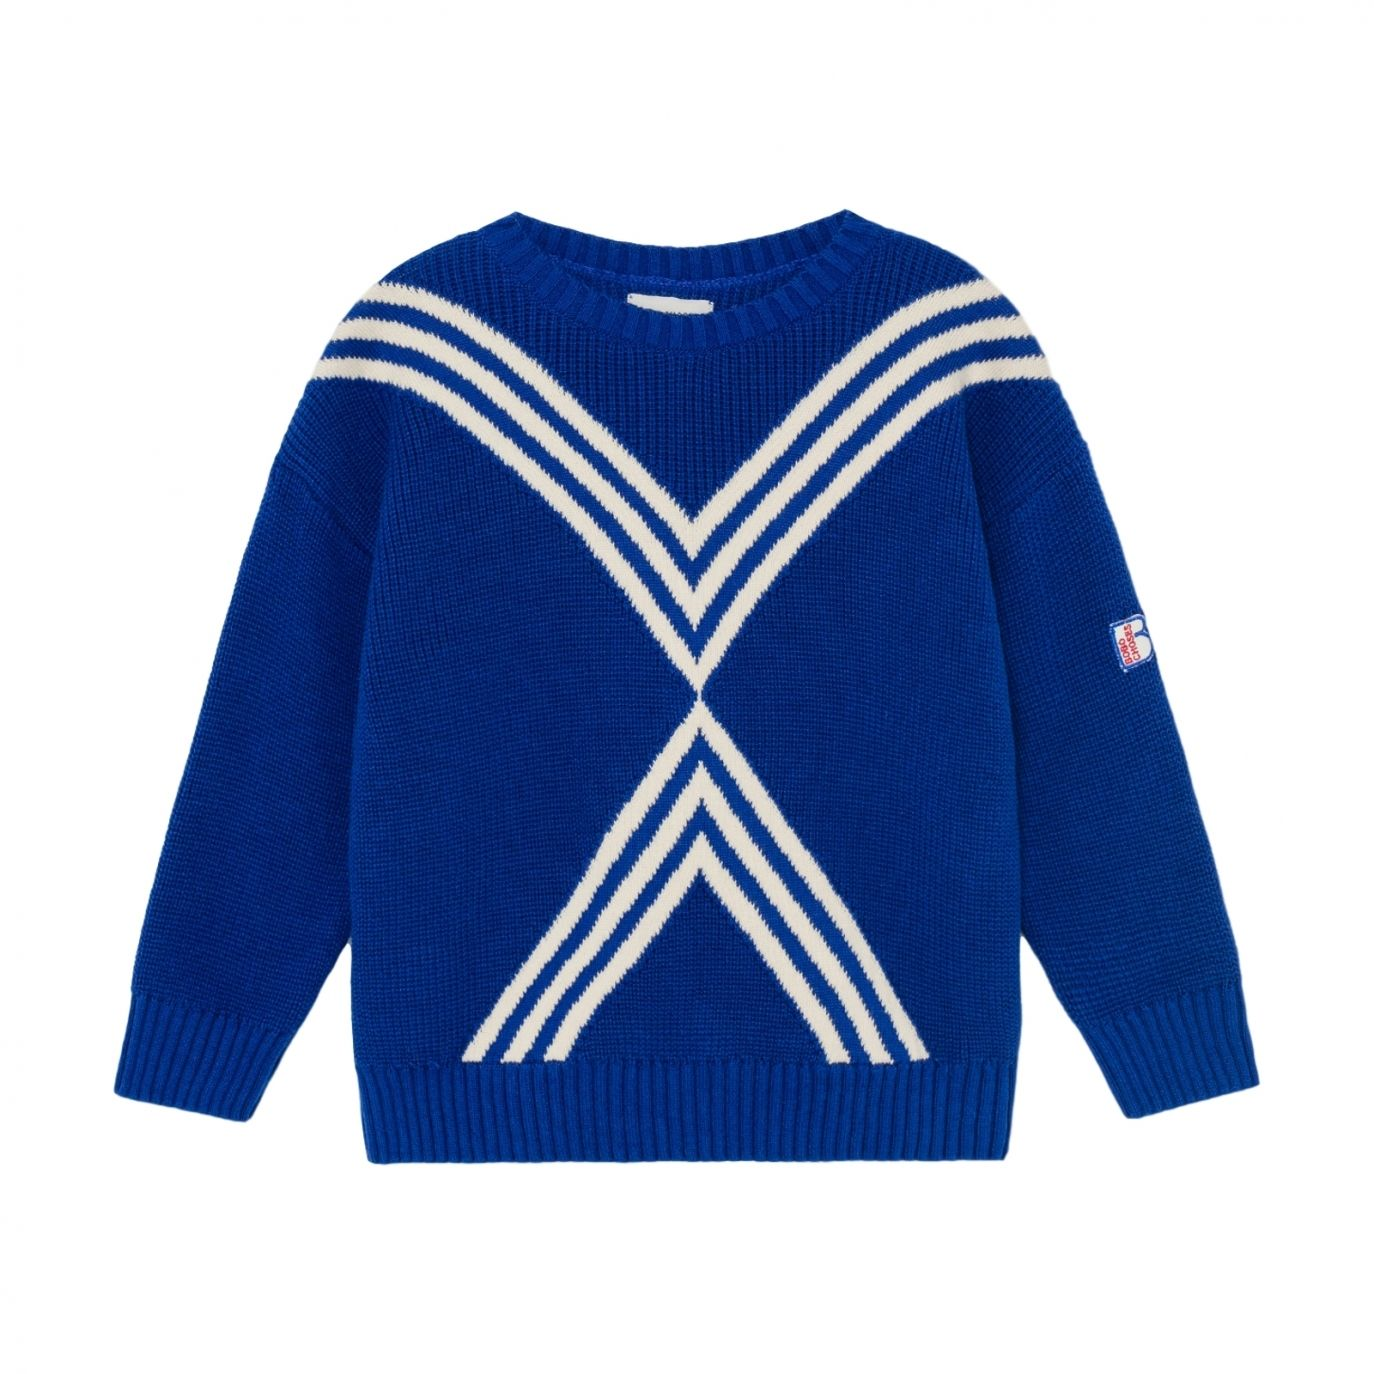 Bobo Choses - Three Stripes Knitted Jumper Blue - 1